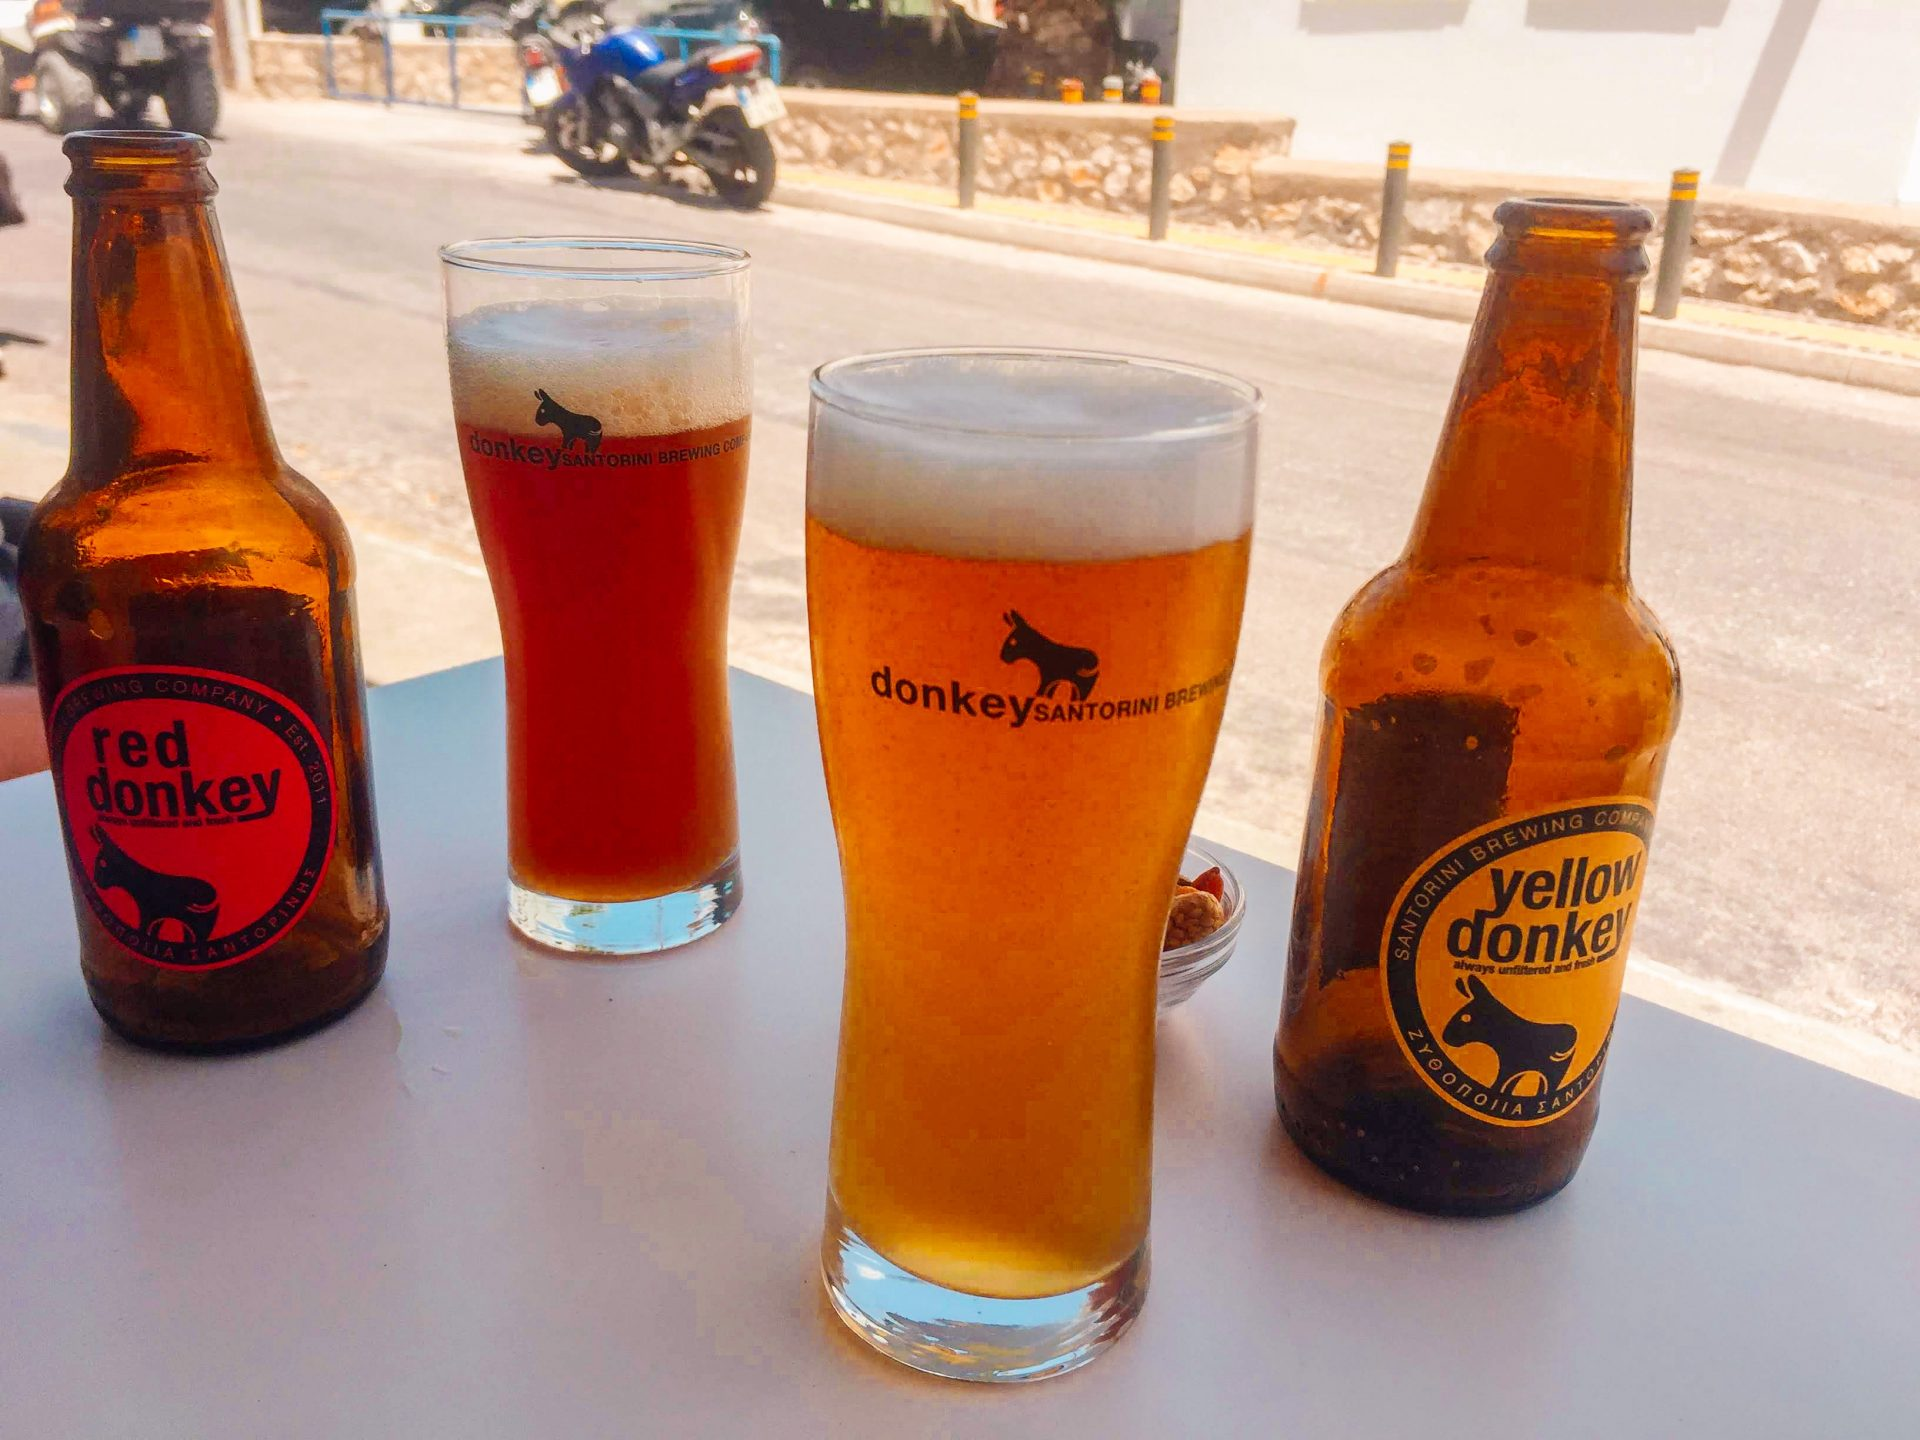 yellow donkey beers sitting on a table in Santorini Greece